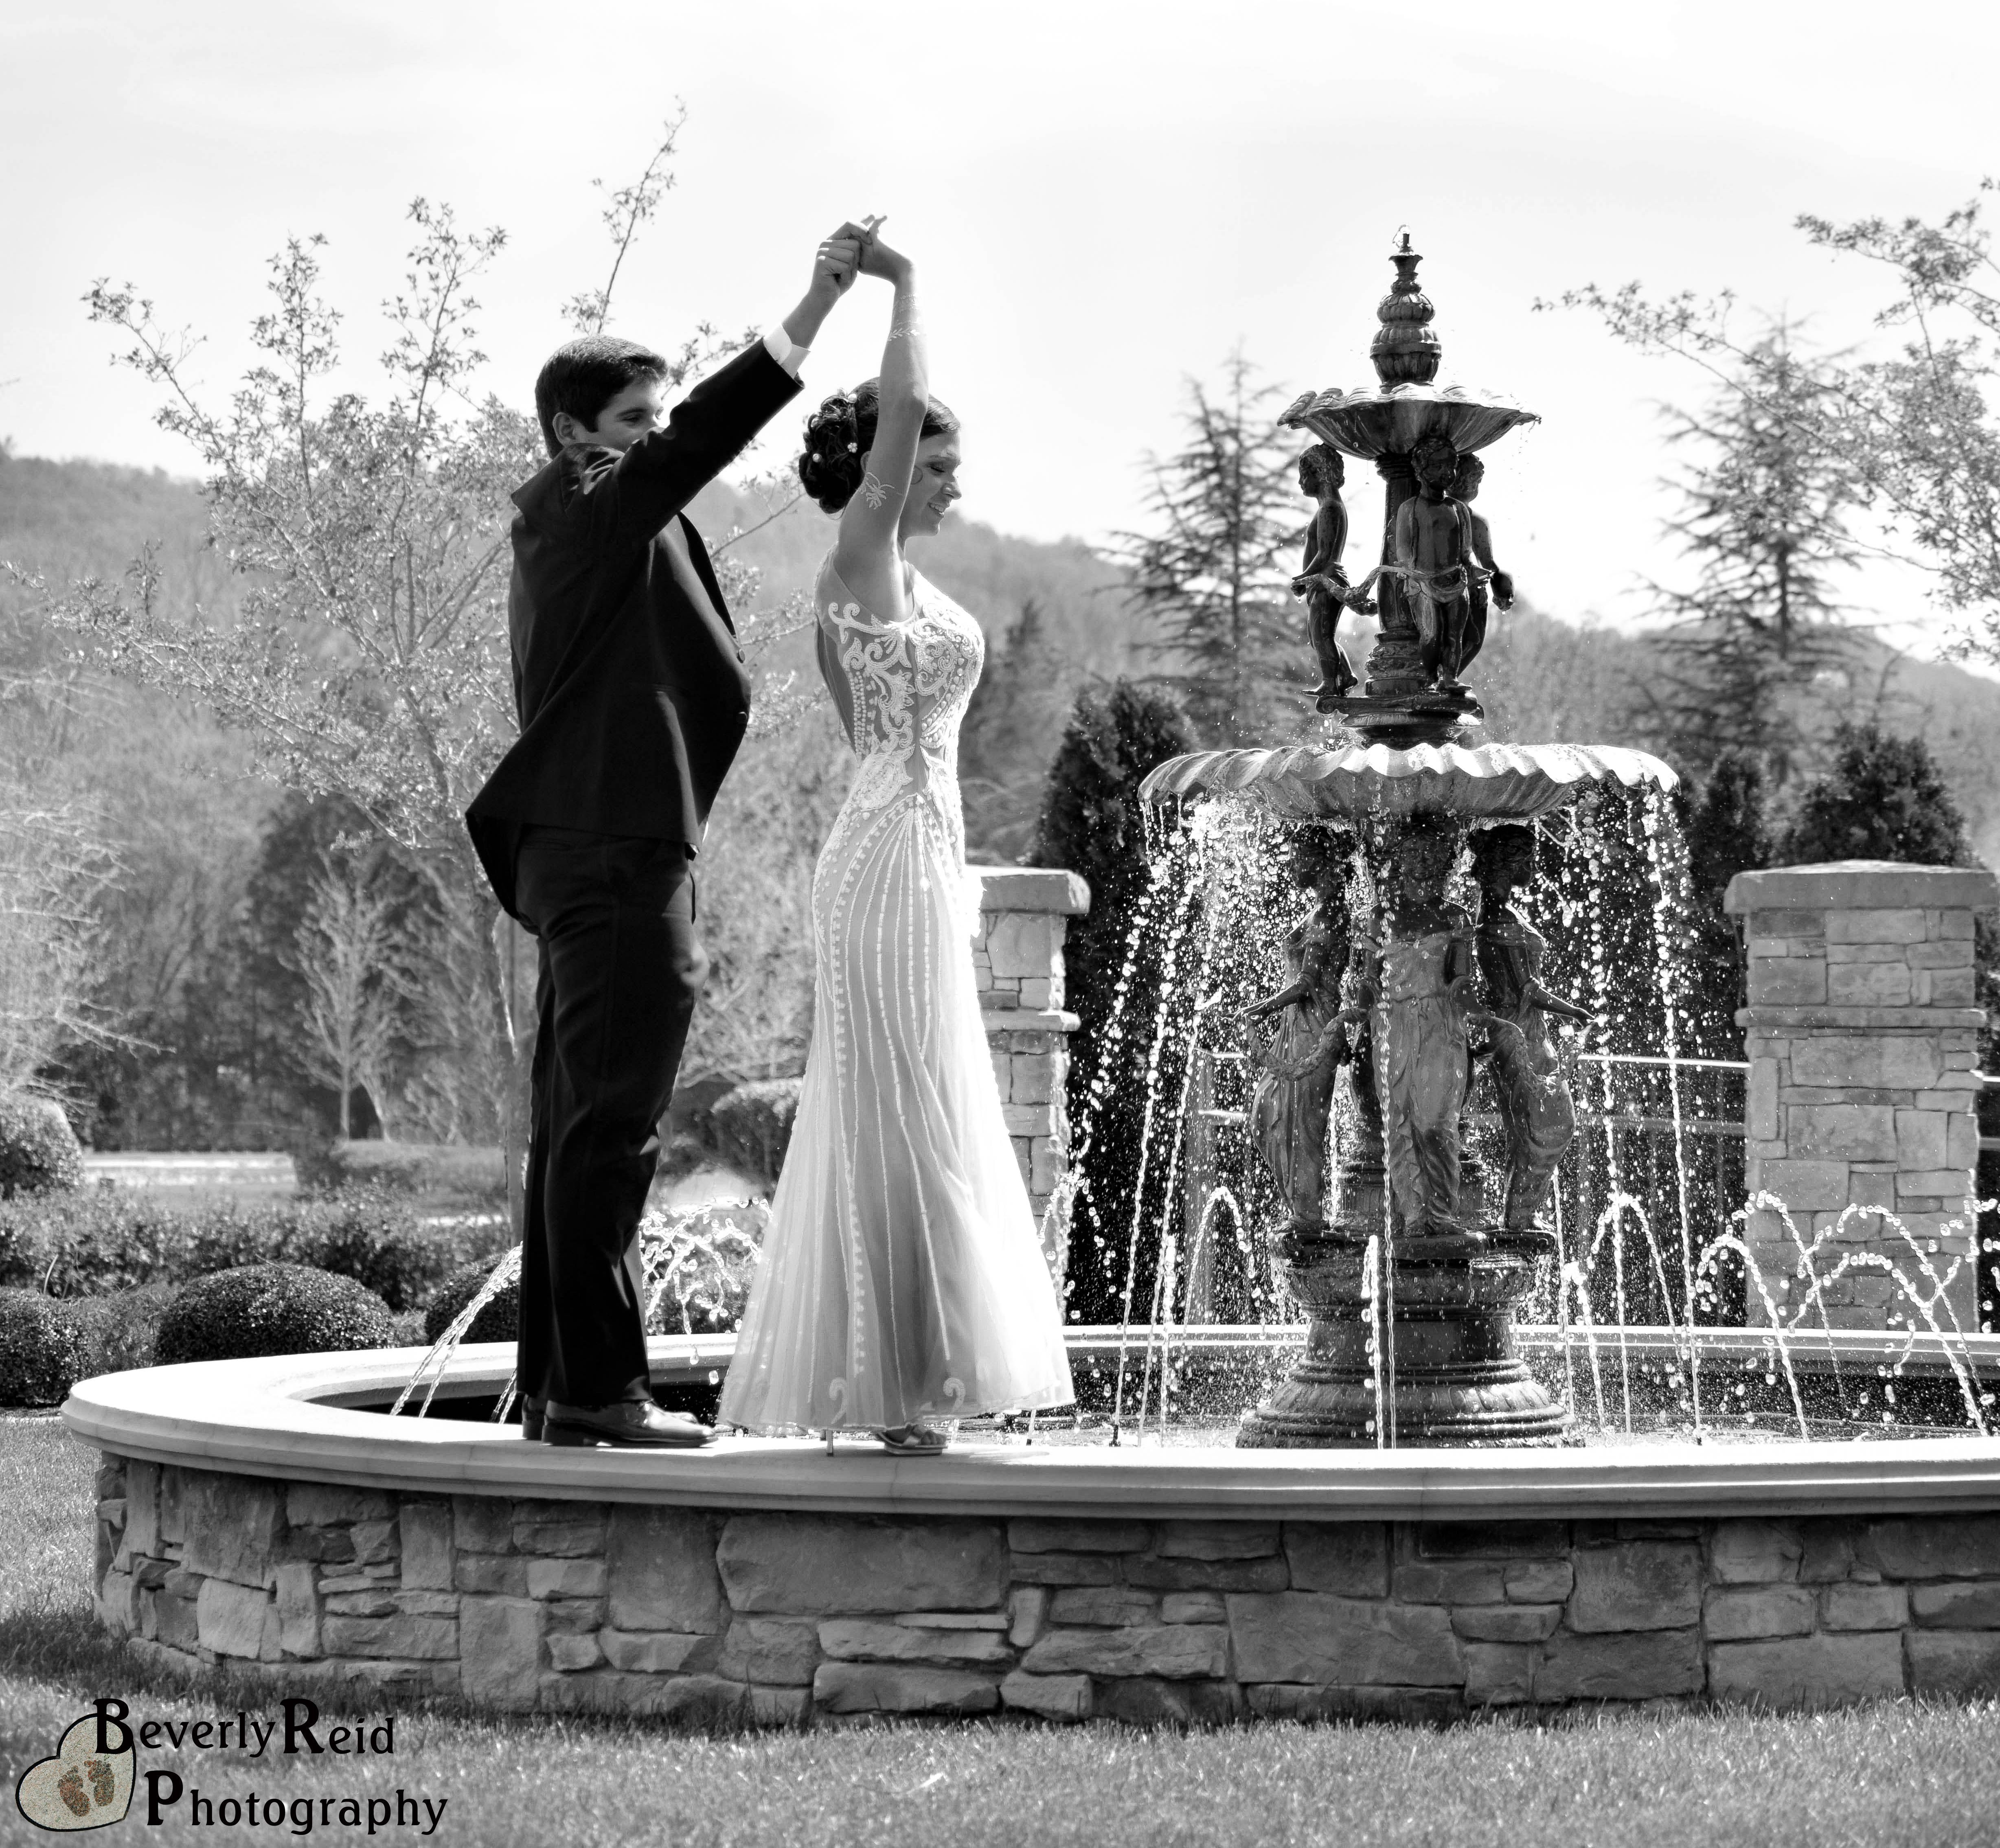 Beautiful black and white PROM picture! #prom #promposes #blackandwhite @prom 2K15 #fountains #prompicturescouples #promproposal #promphotographyposes